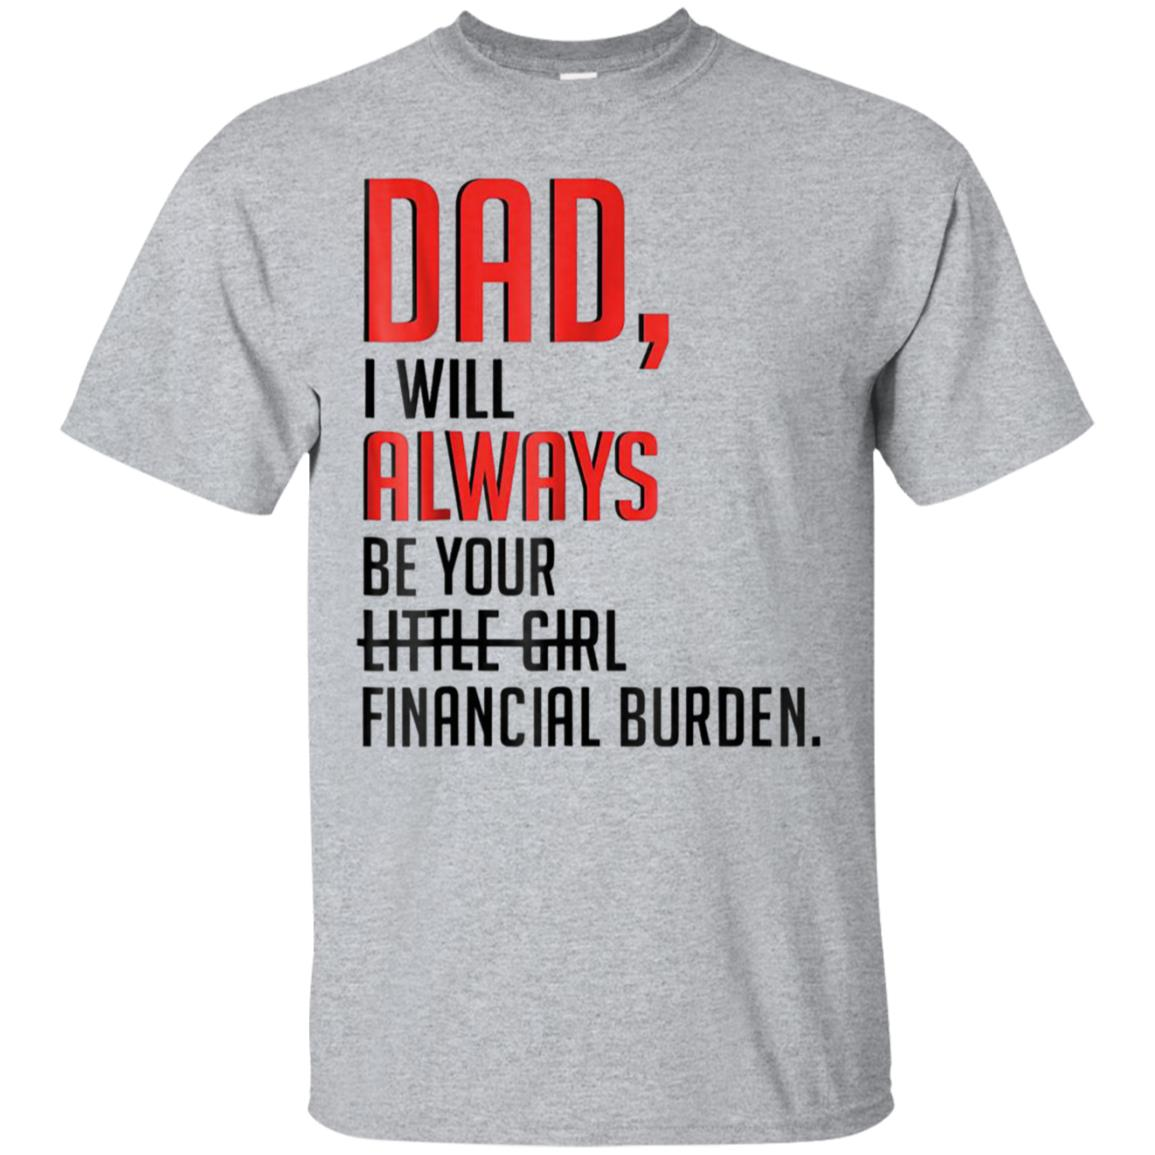 Dad i will always be your little girl financial burden shirt 99promocode